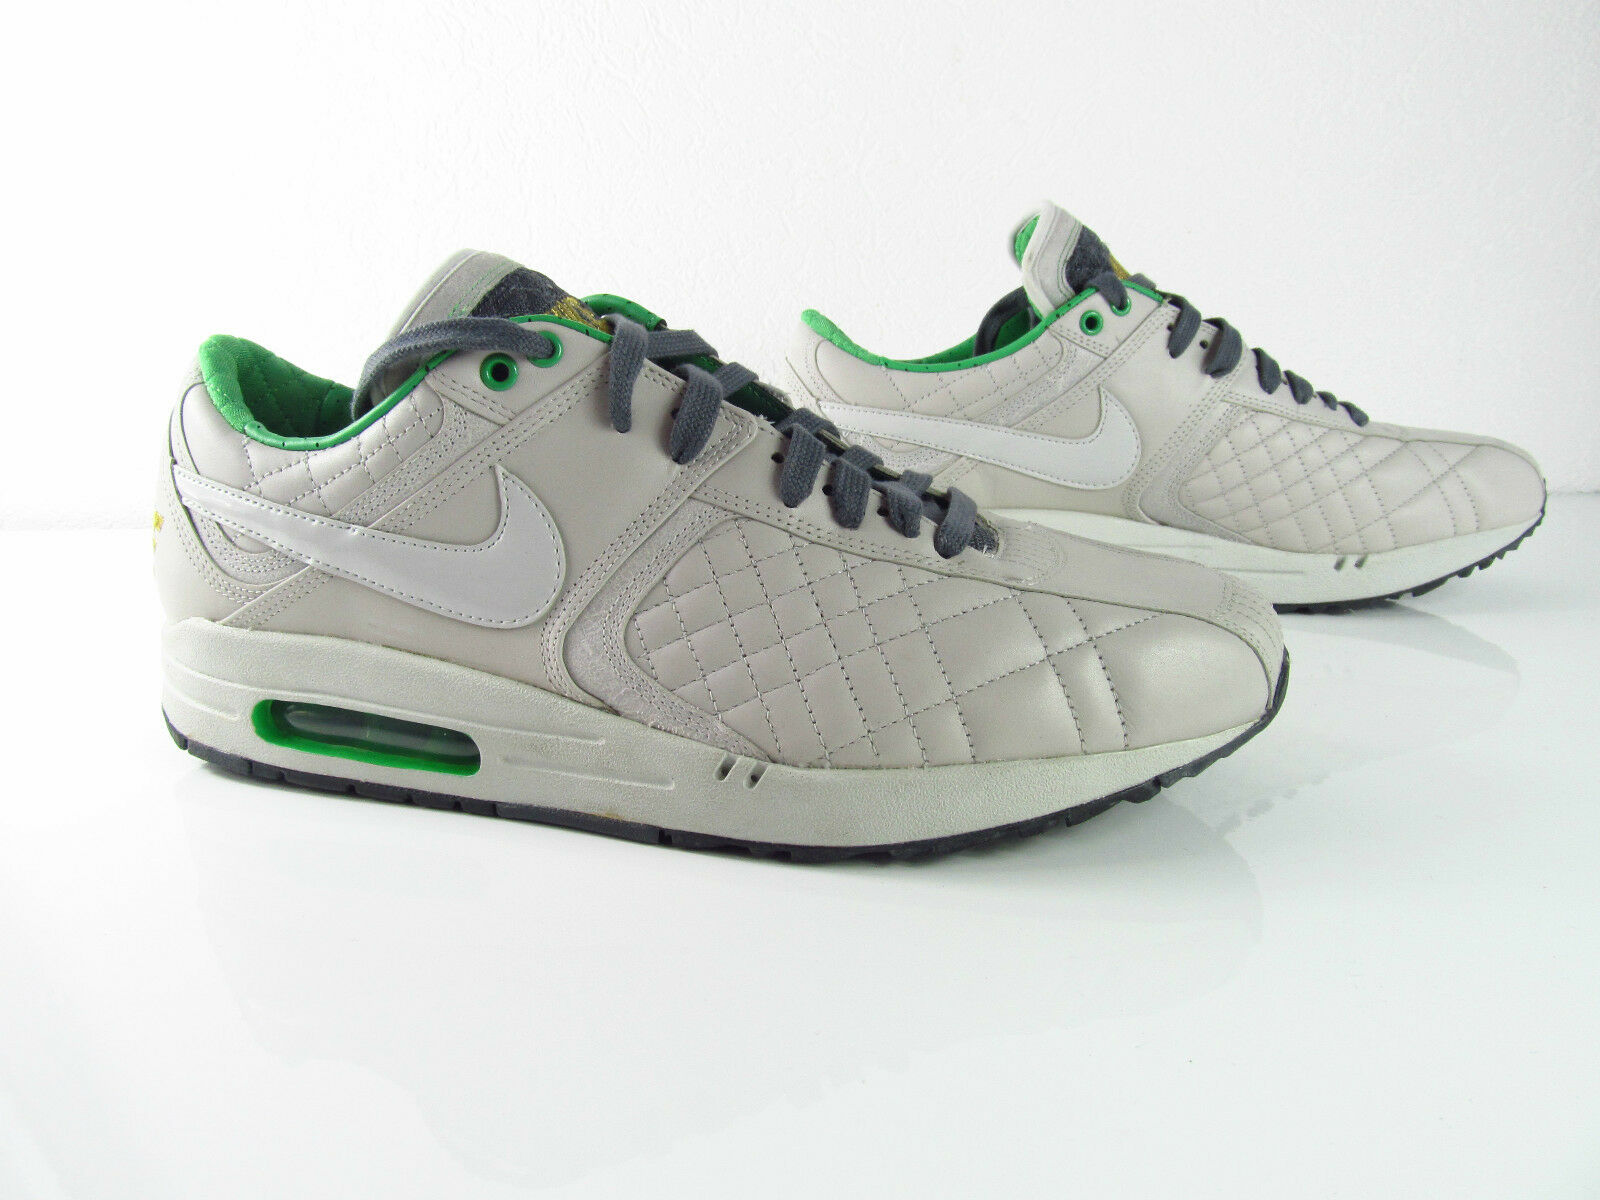 Nike 87 Air Max Tricky 90 87 Nike 1 Quilted Gris Very Rare UK_10.5 US_11.5 Eur 45.5 4a7ac2